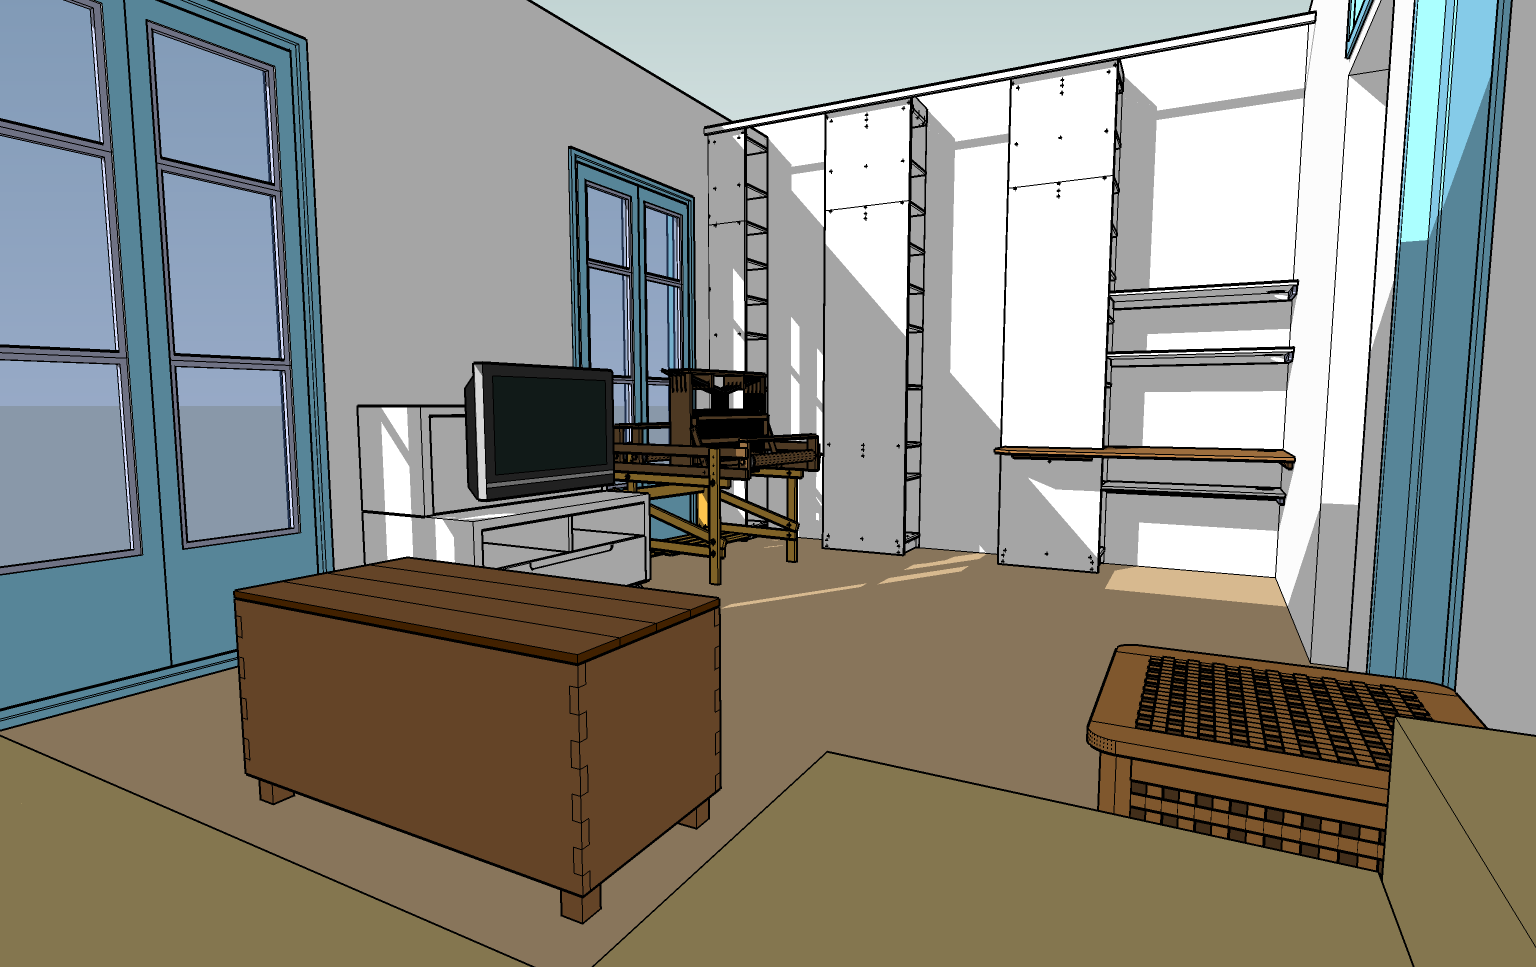 Using google sketchup to test room layouts catmacey 39 s stuff Make a room layout